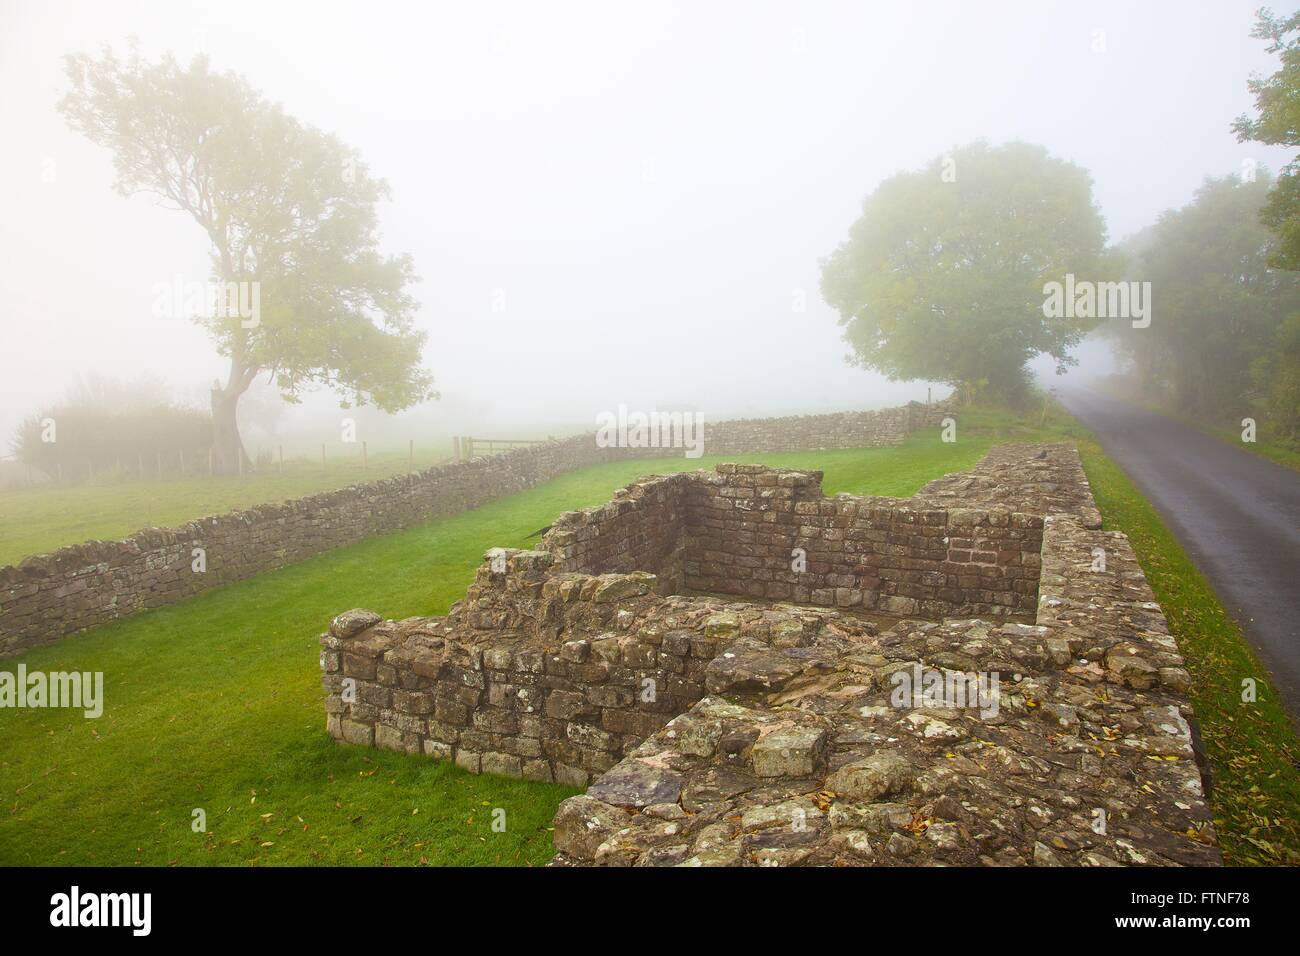 Hadrian's Wall. In Fog. Turret 52A, Banks, Cumbria, England, United Kingdom, Europe. - Stock Image